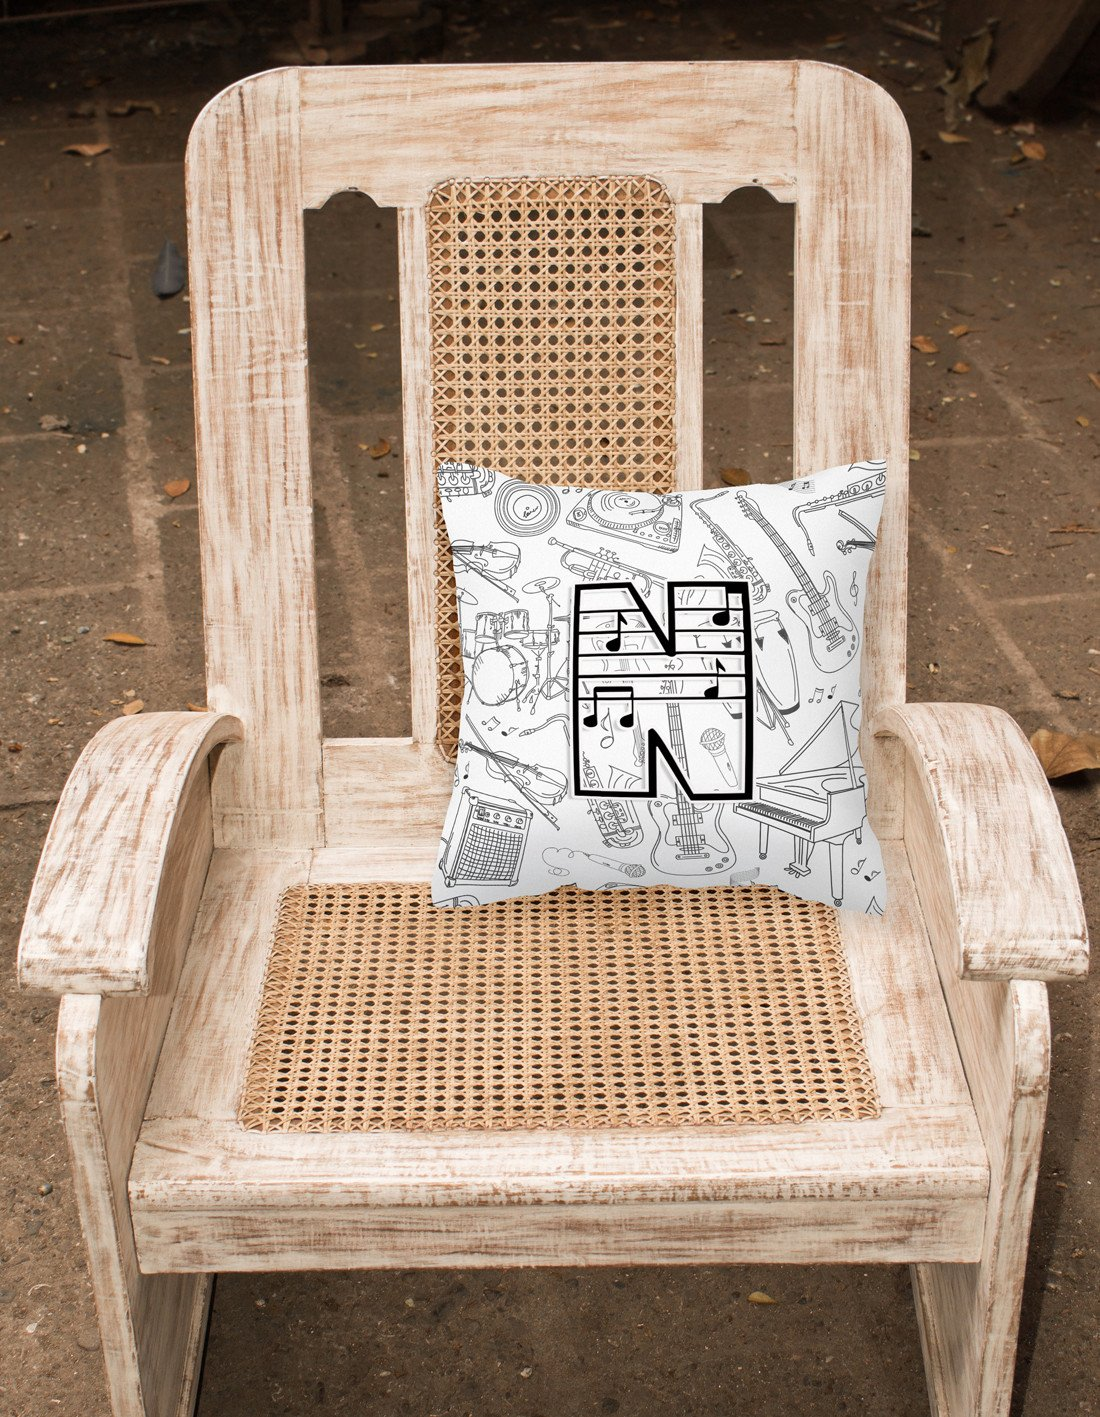 Letter N Musical Note Letters Canvas Fabric Decorative Pillow CJ2007-NPW1414 by Caroline's Treasures